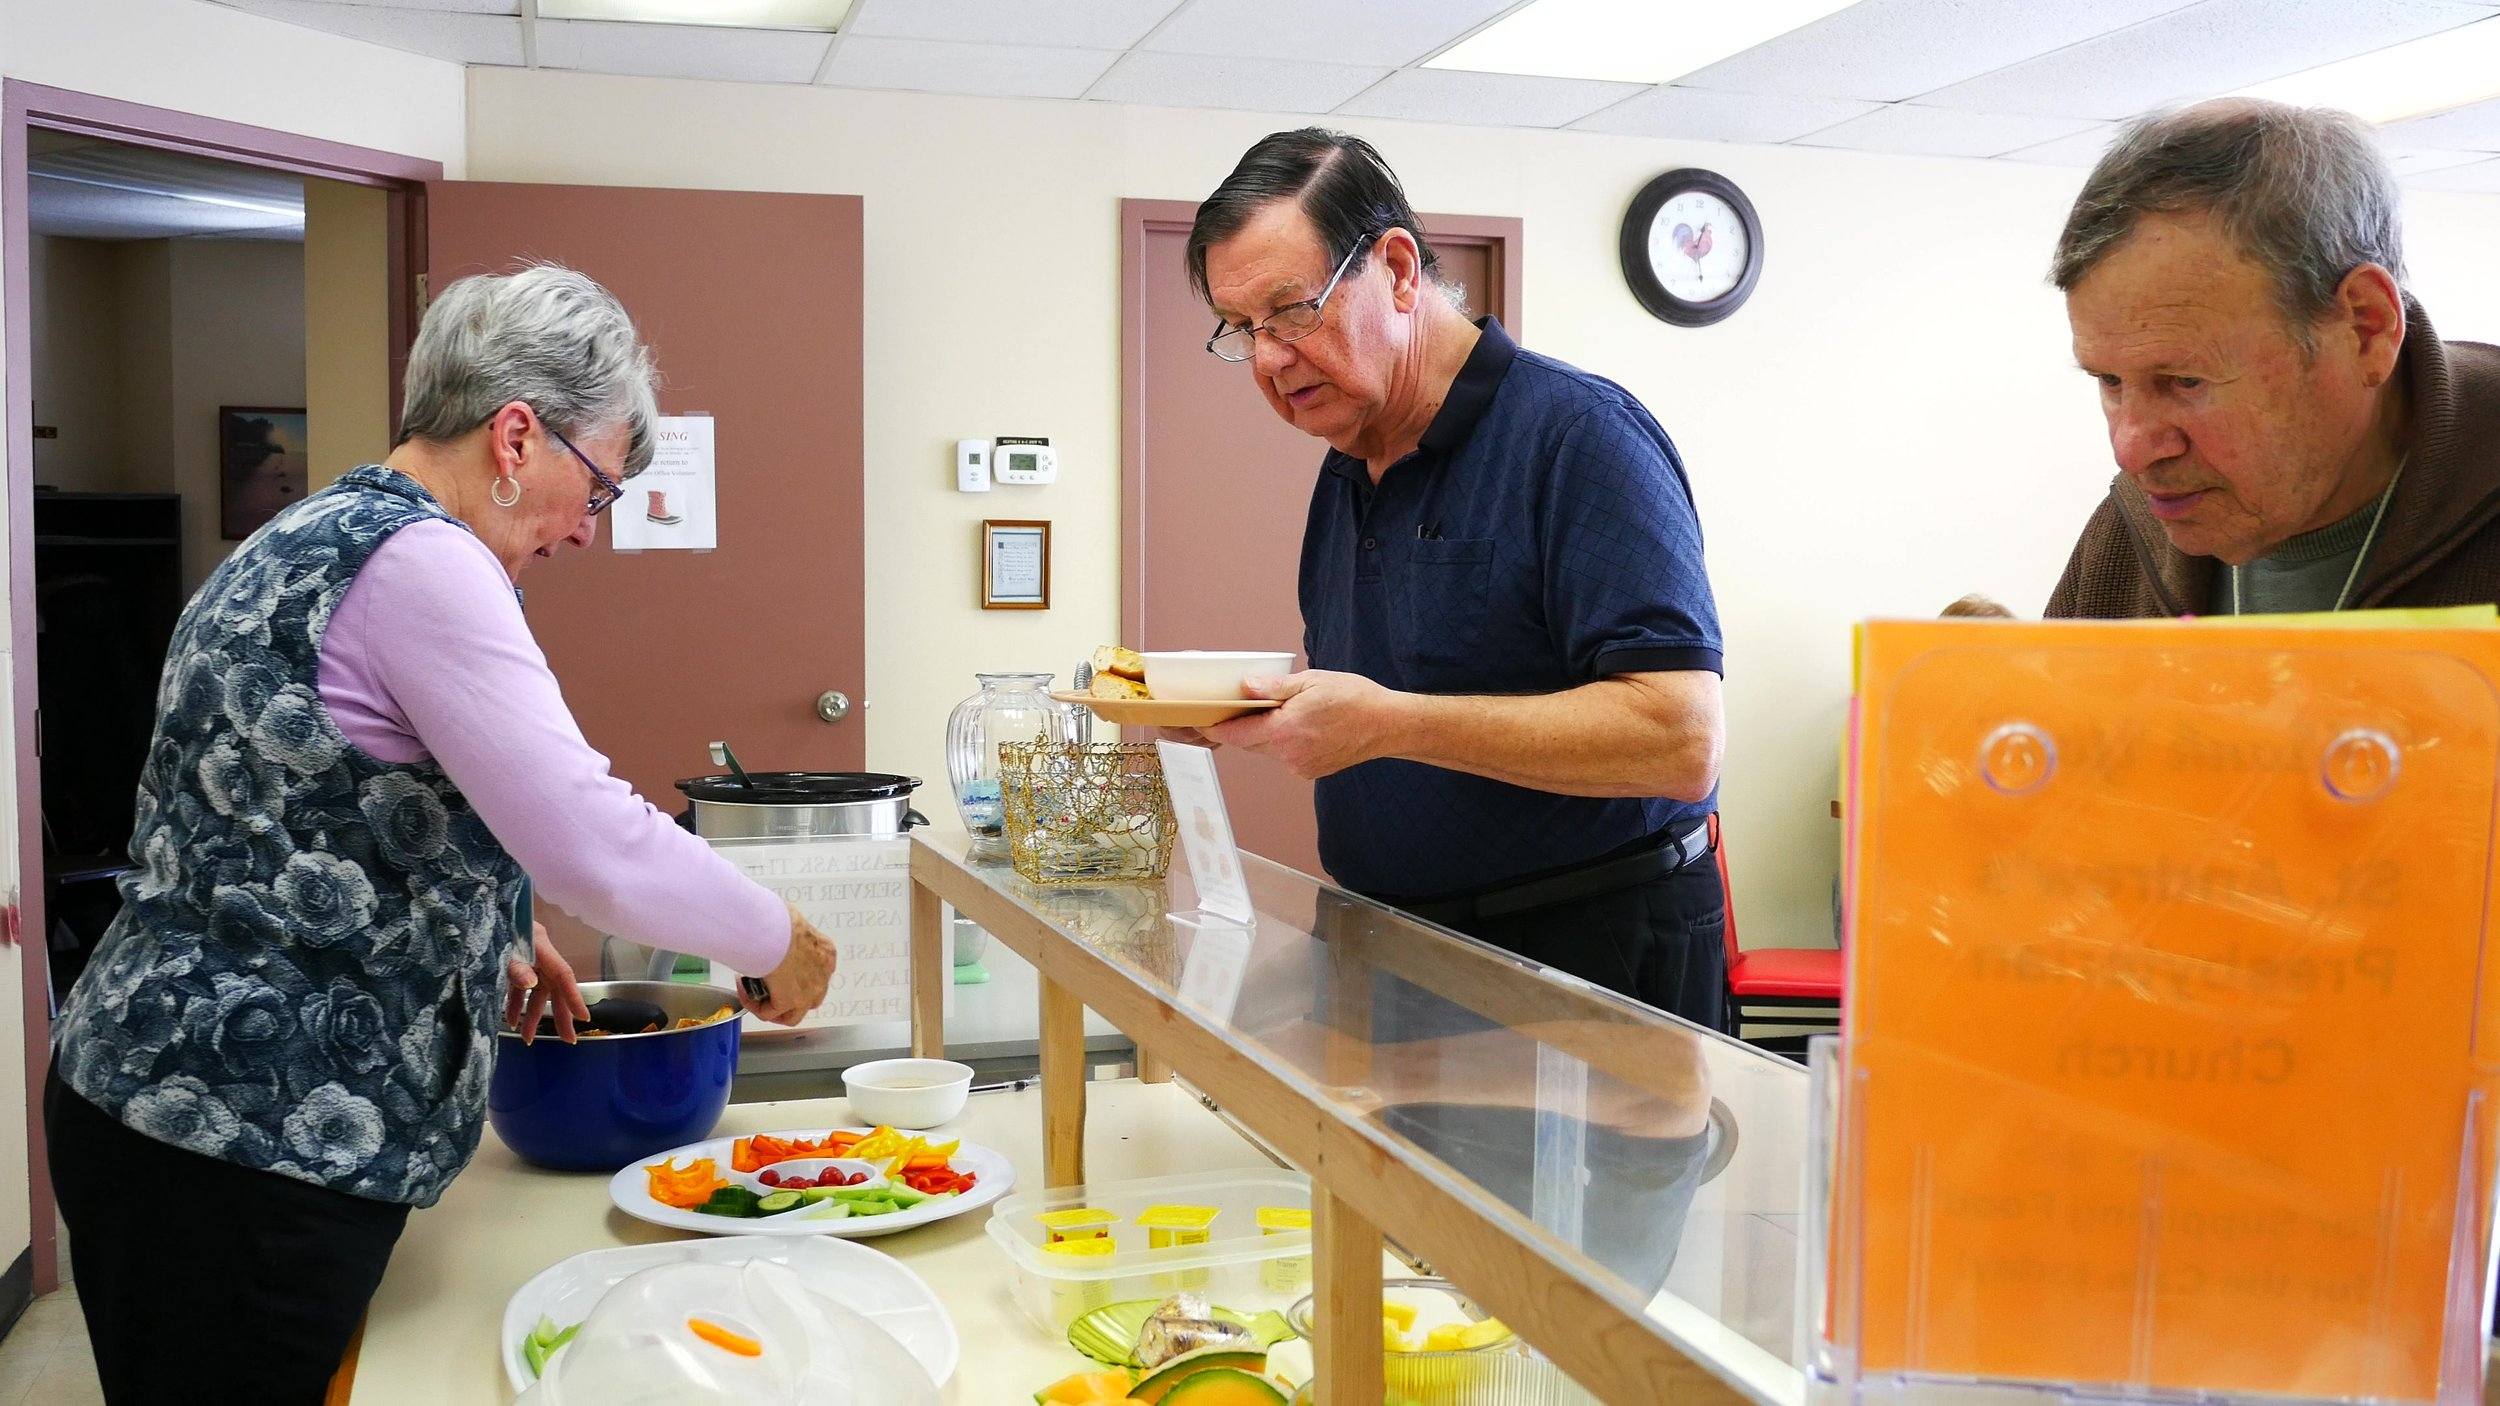 Our Mission - A drop-in center where dedicated volunteers share God's love with people from all walks of life by linking resources from churches and community to meet their physical, emotional and spiritual needs.